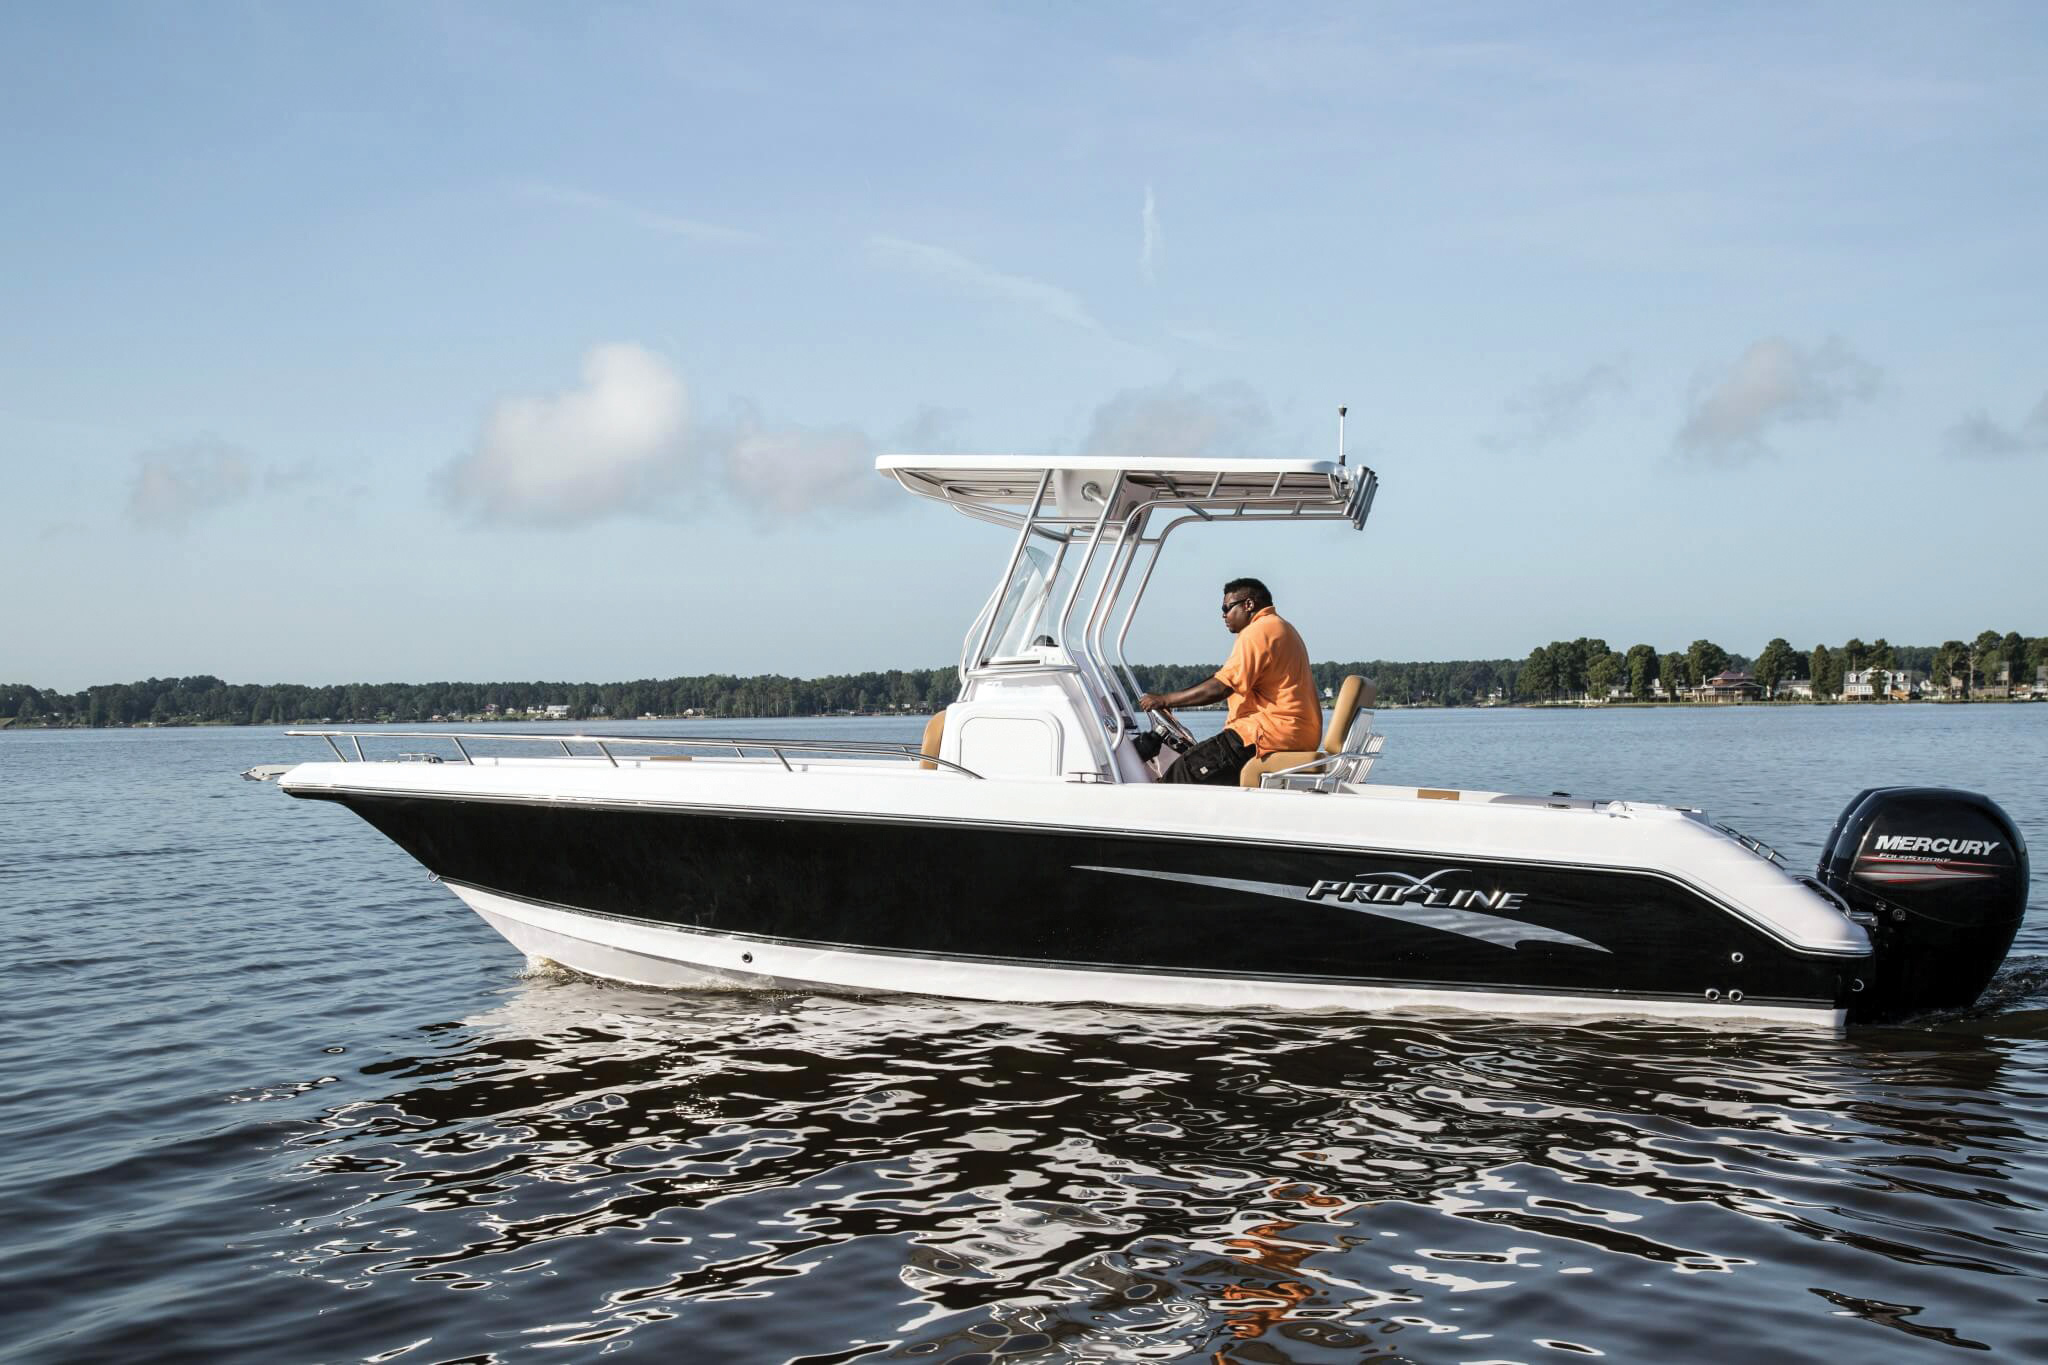 2018 1 Buyers Guide Pro Line 26 Super Sport